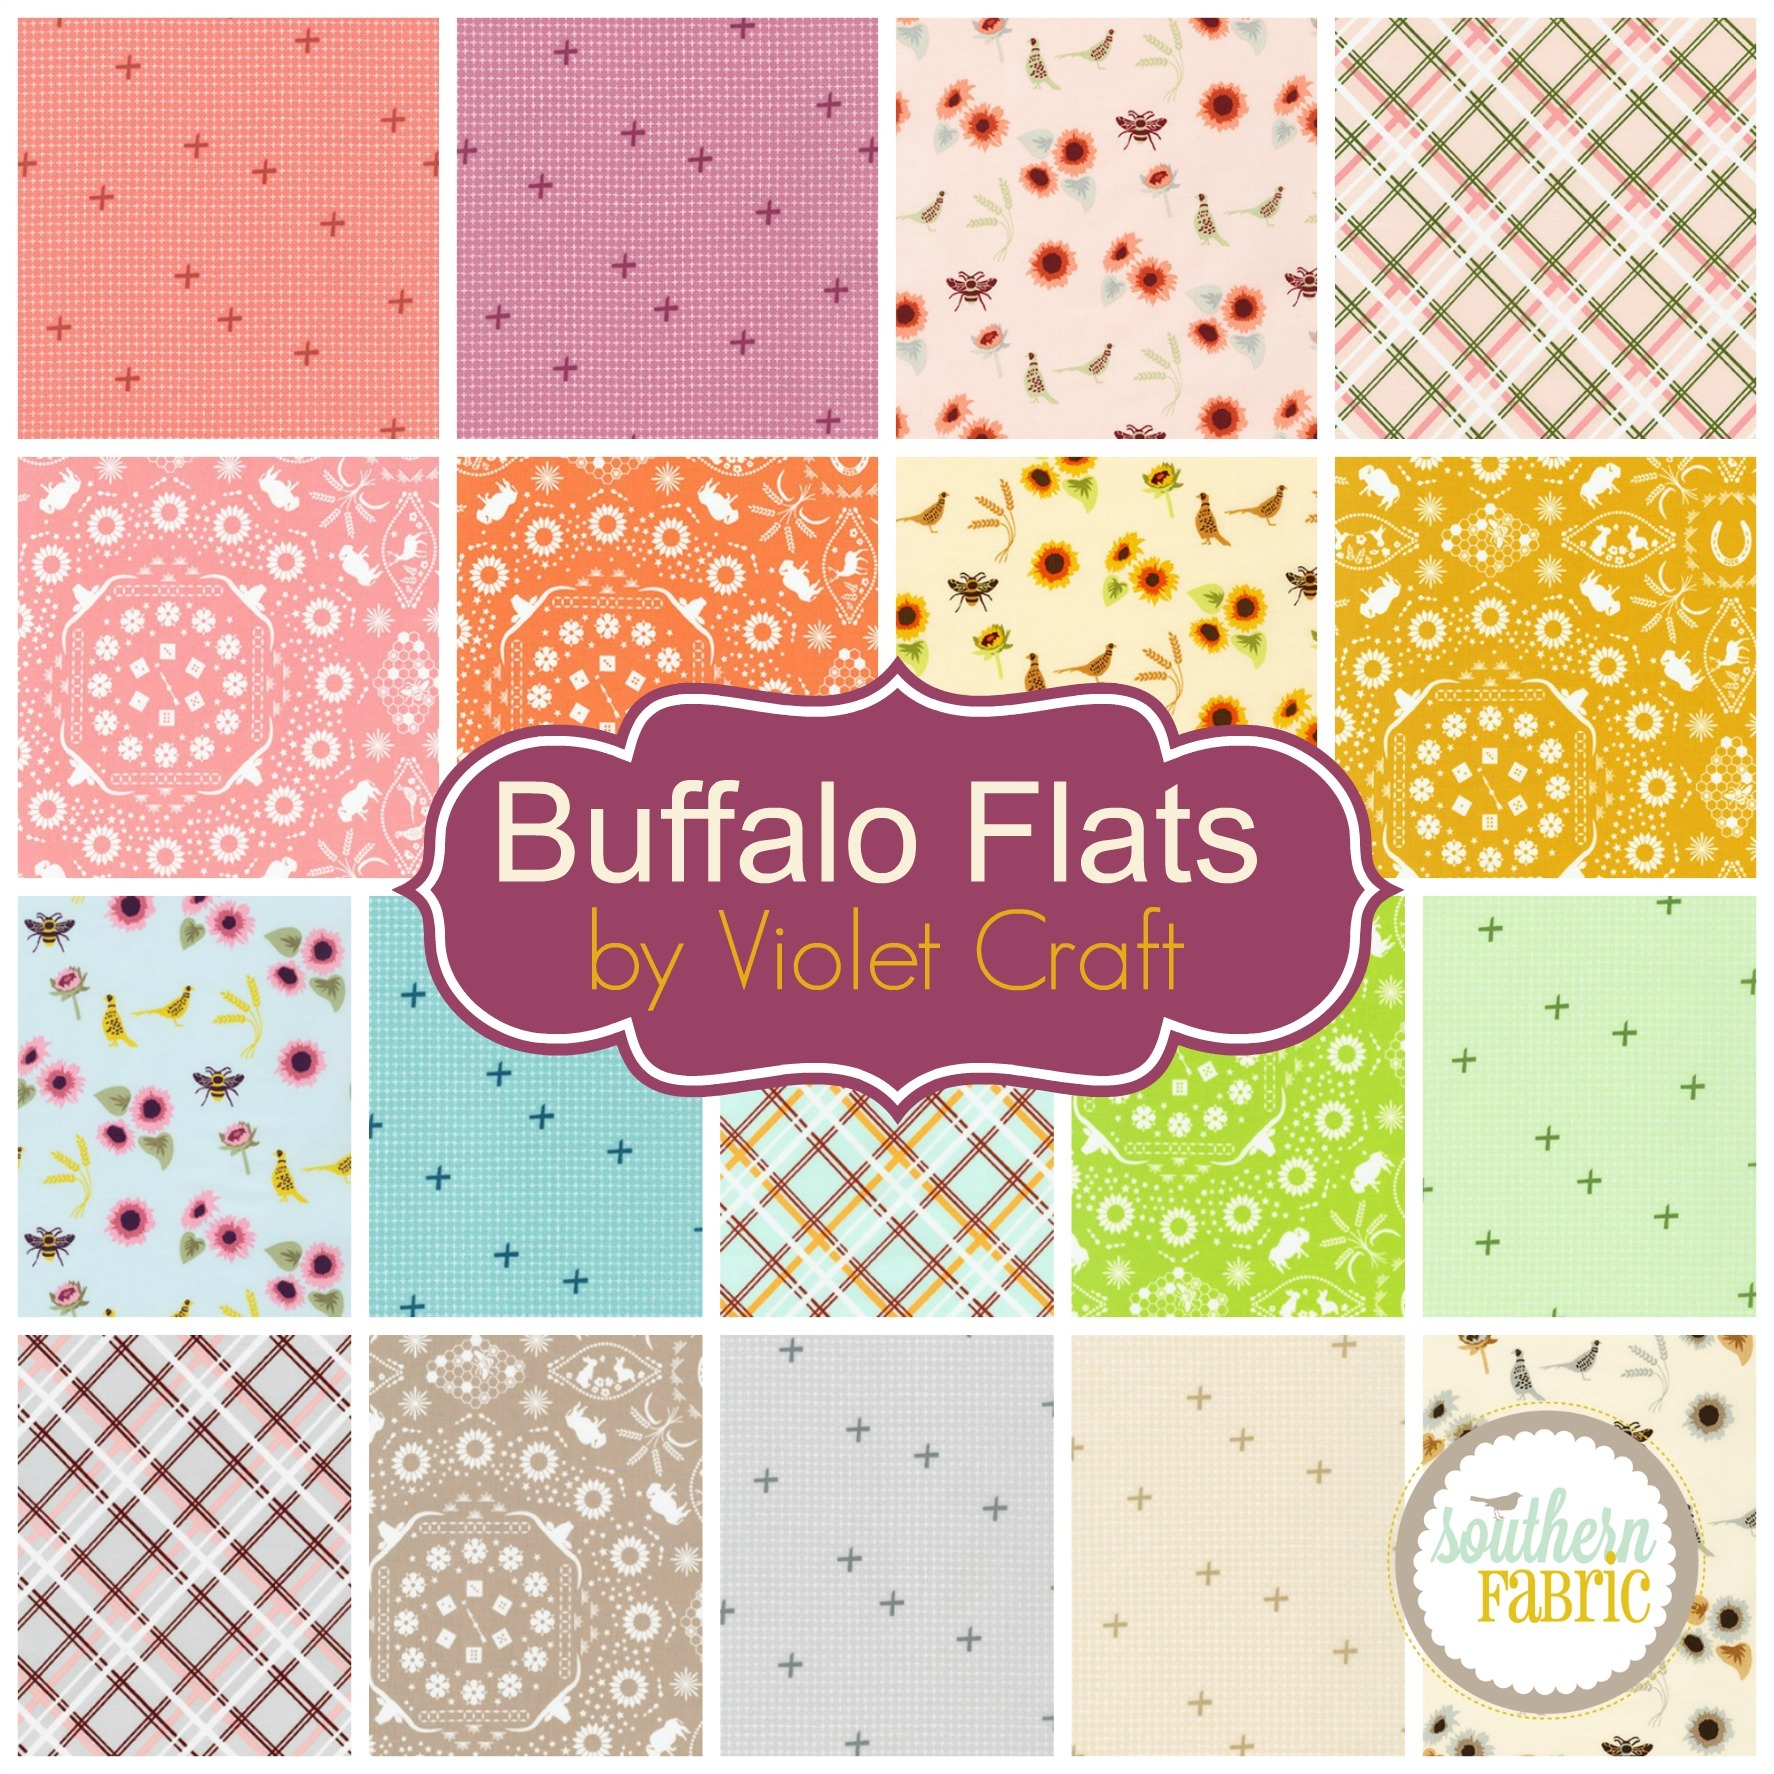 Buffalo Flats by Violet Craft